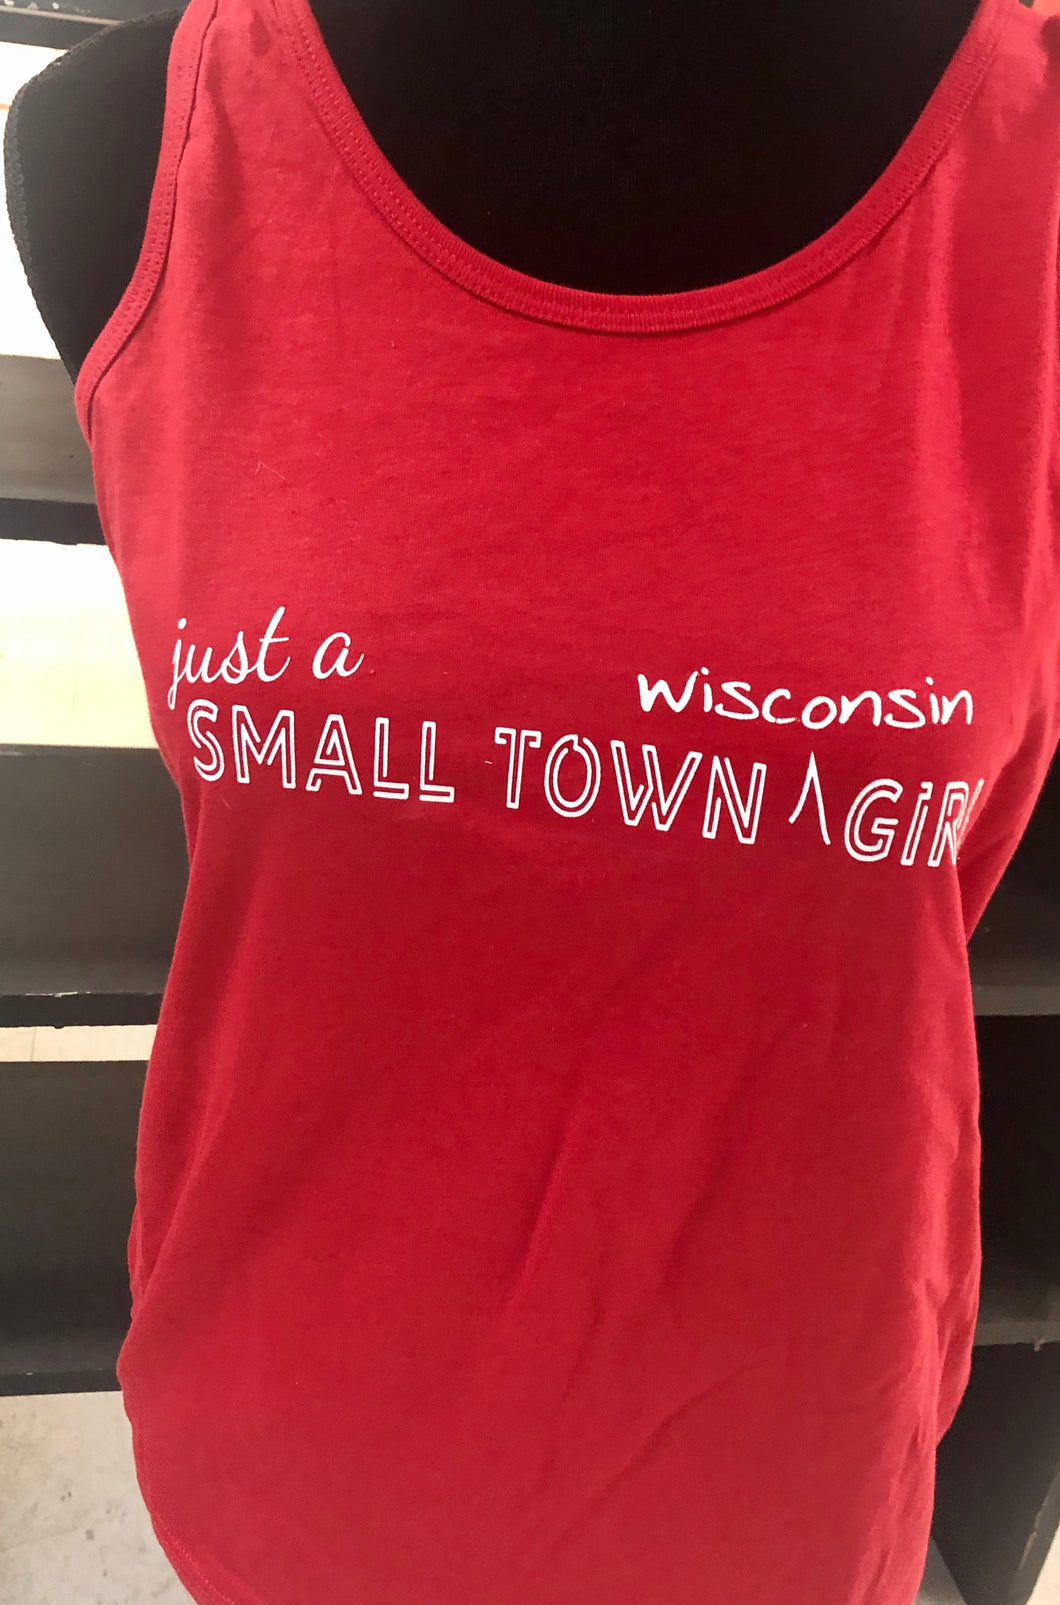 Just a Small Town Girl...Wisconsin Tank Top Red racer back